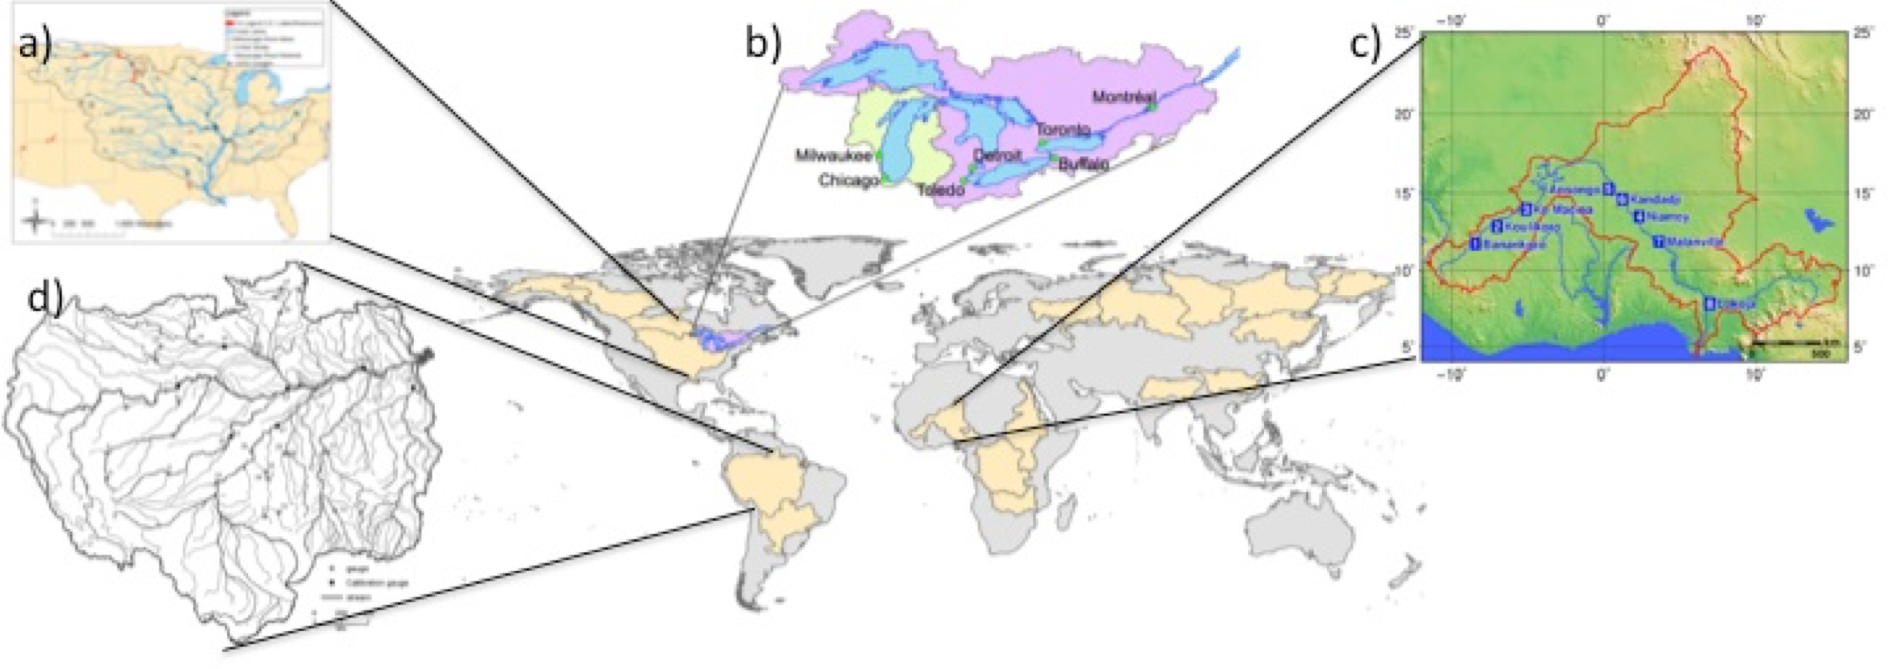 The largest basins studied with models